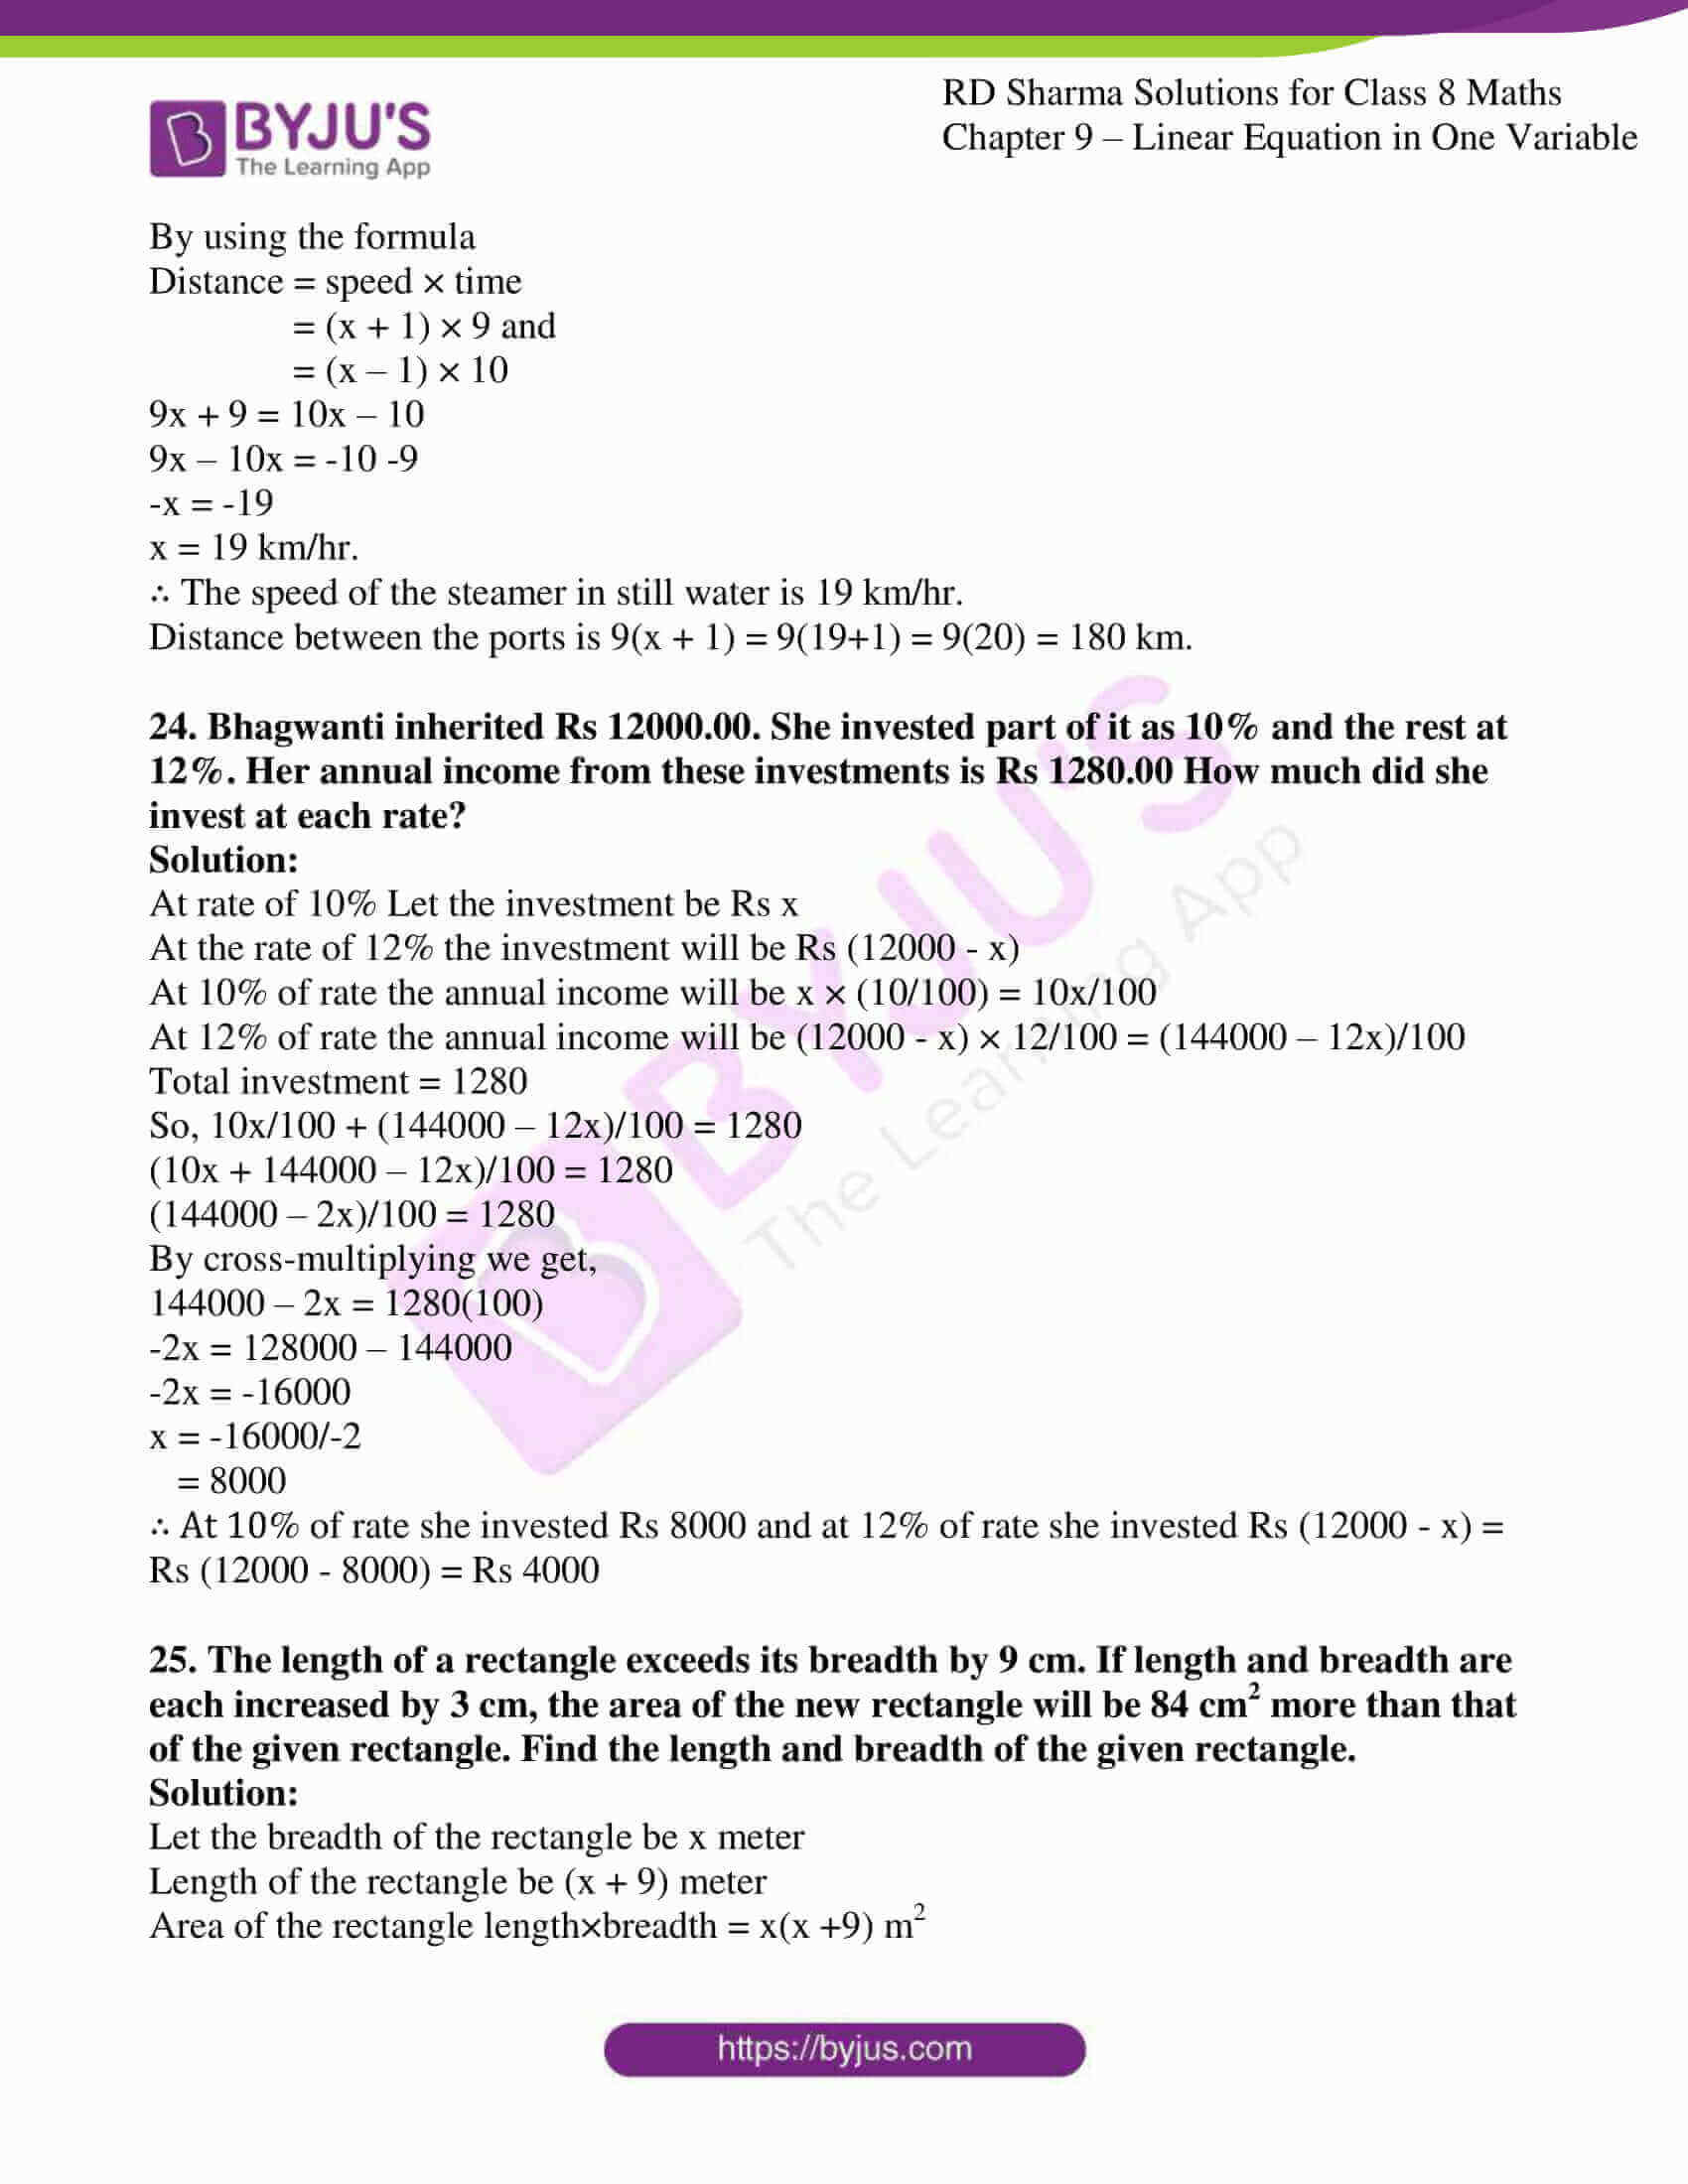 rd sharma class 8 maths chapter 9 exercise 4 11